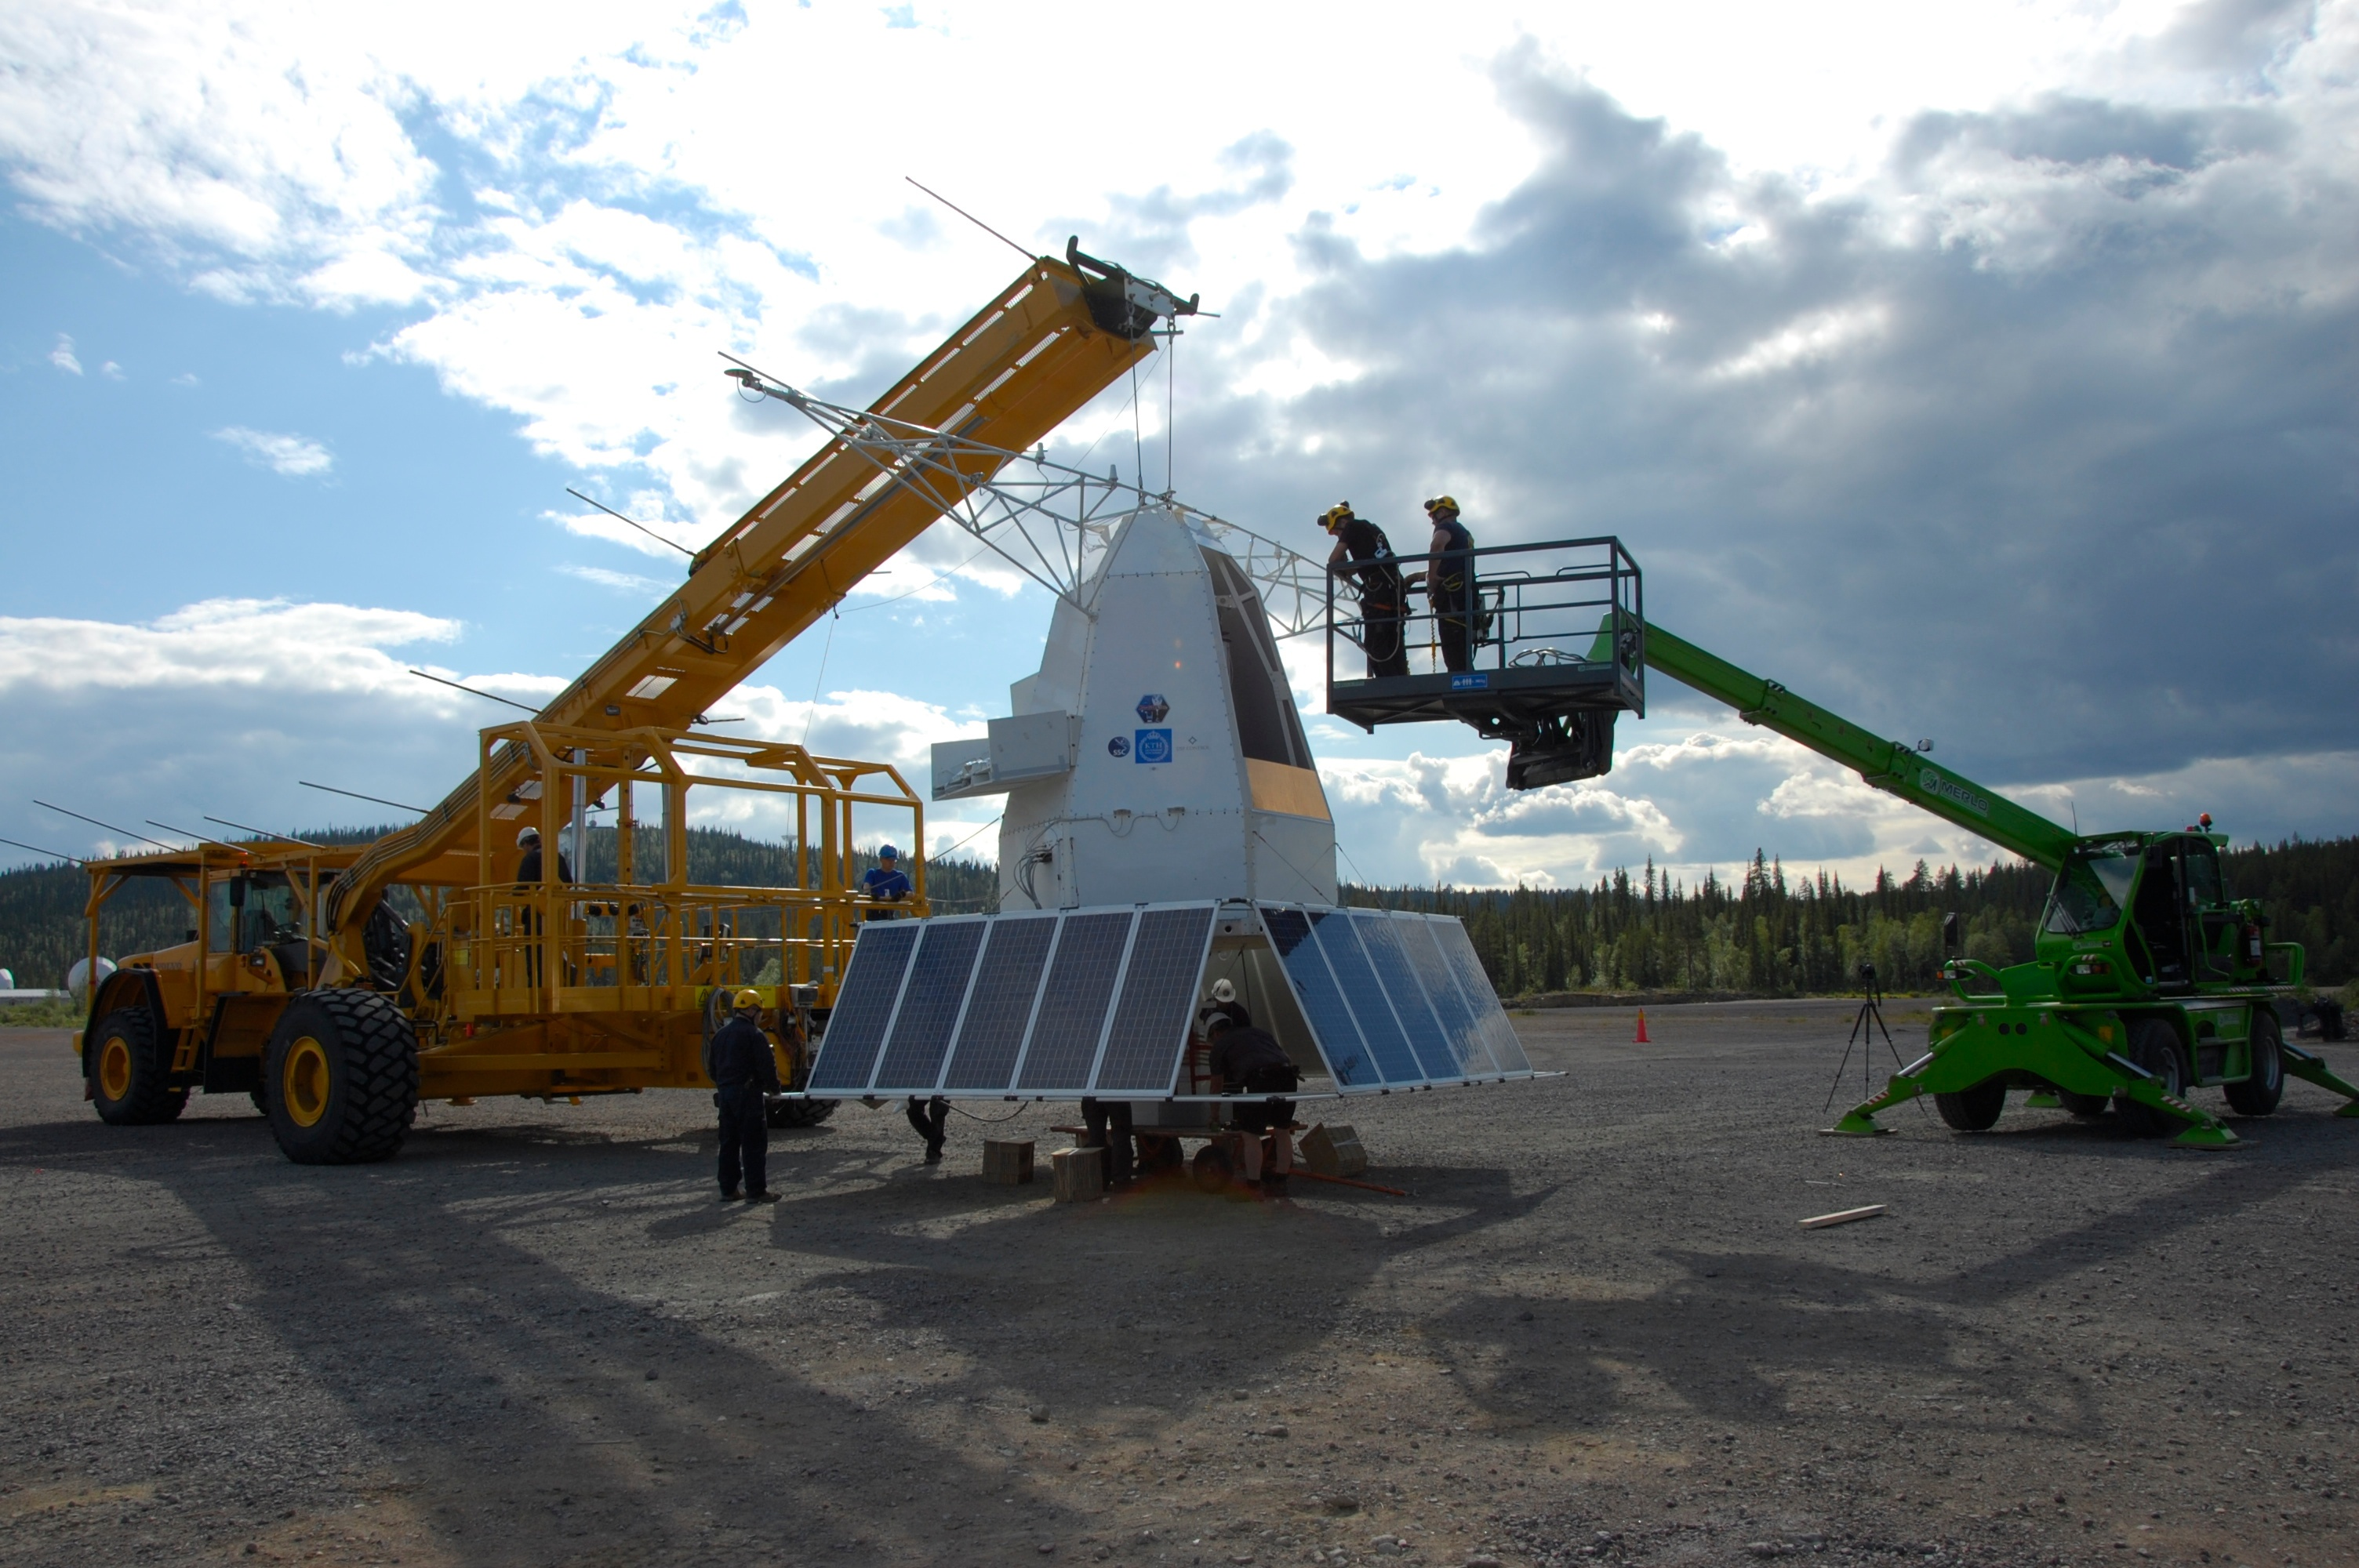 PoGOLite being prepared for launch.